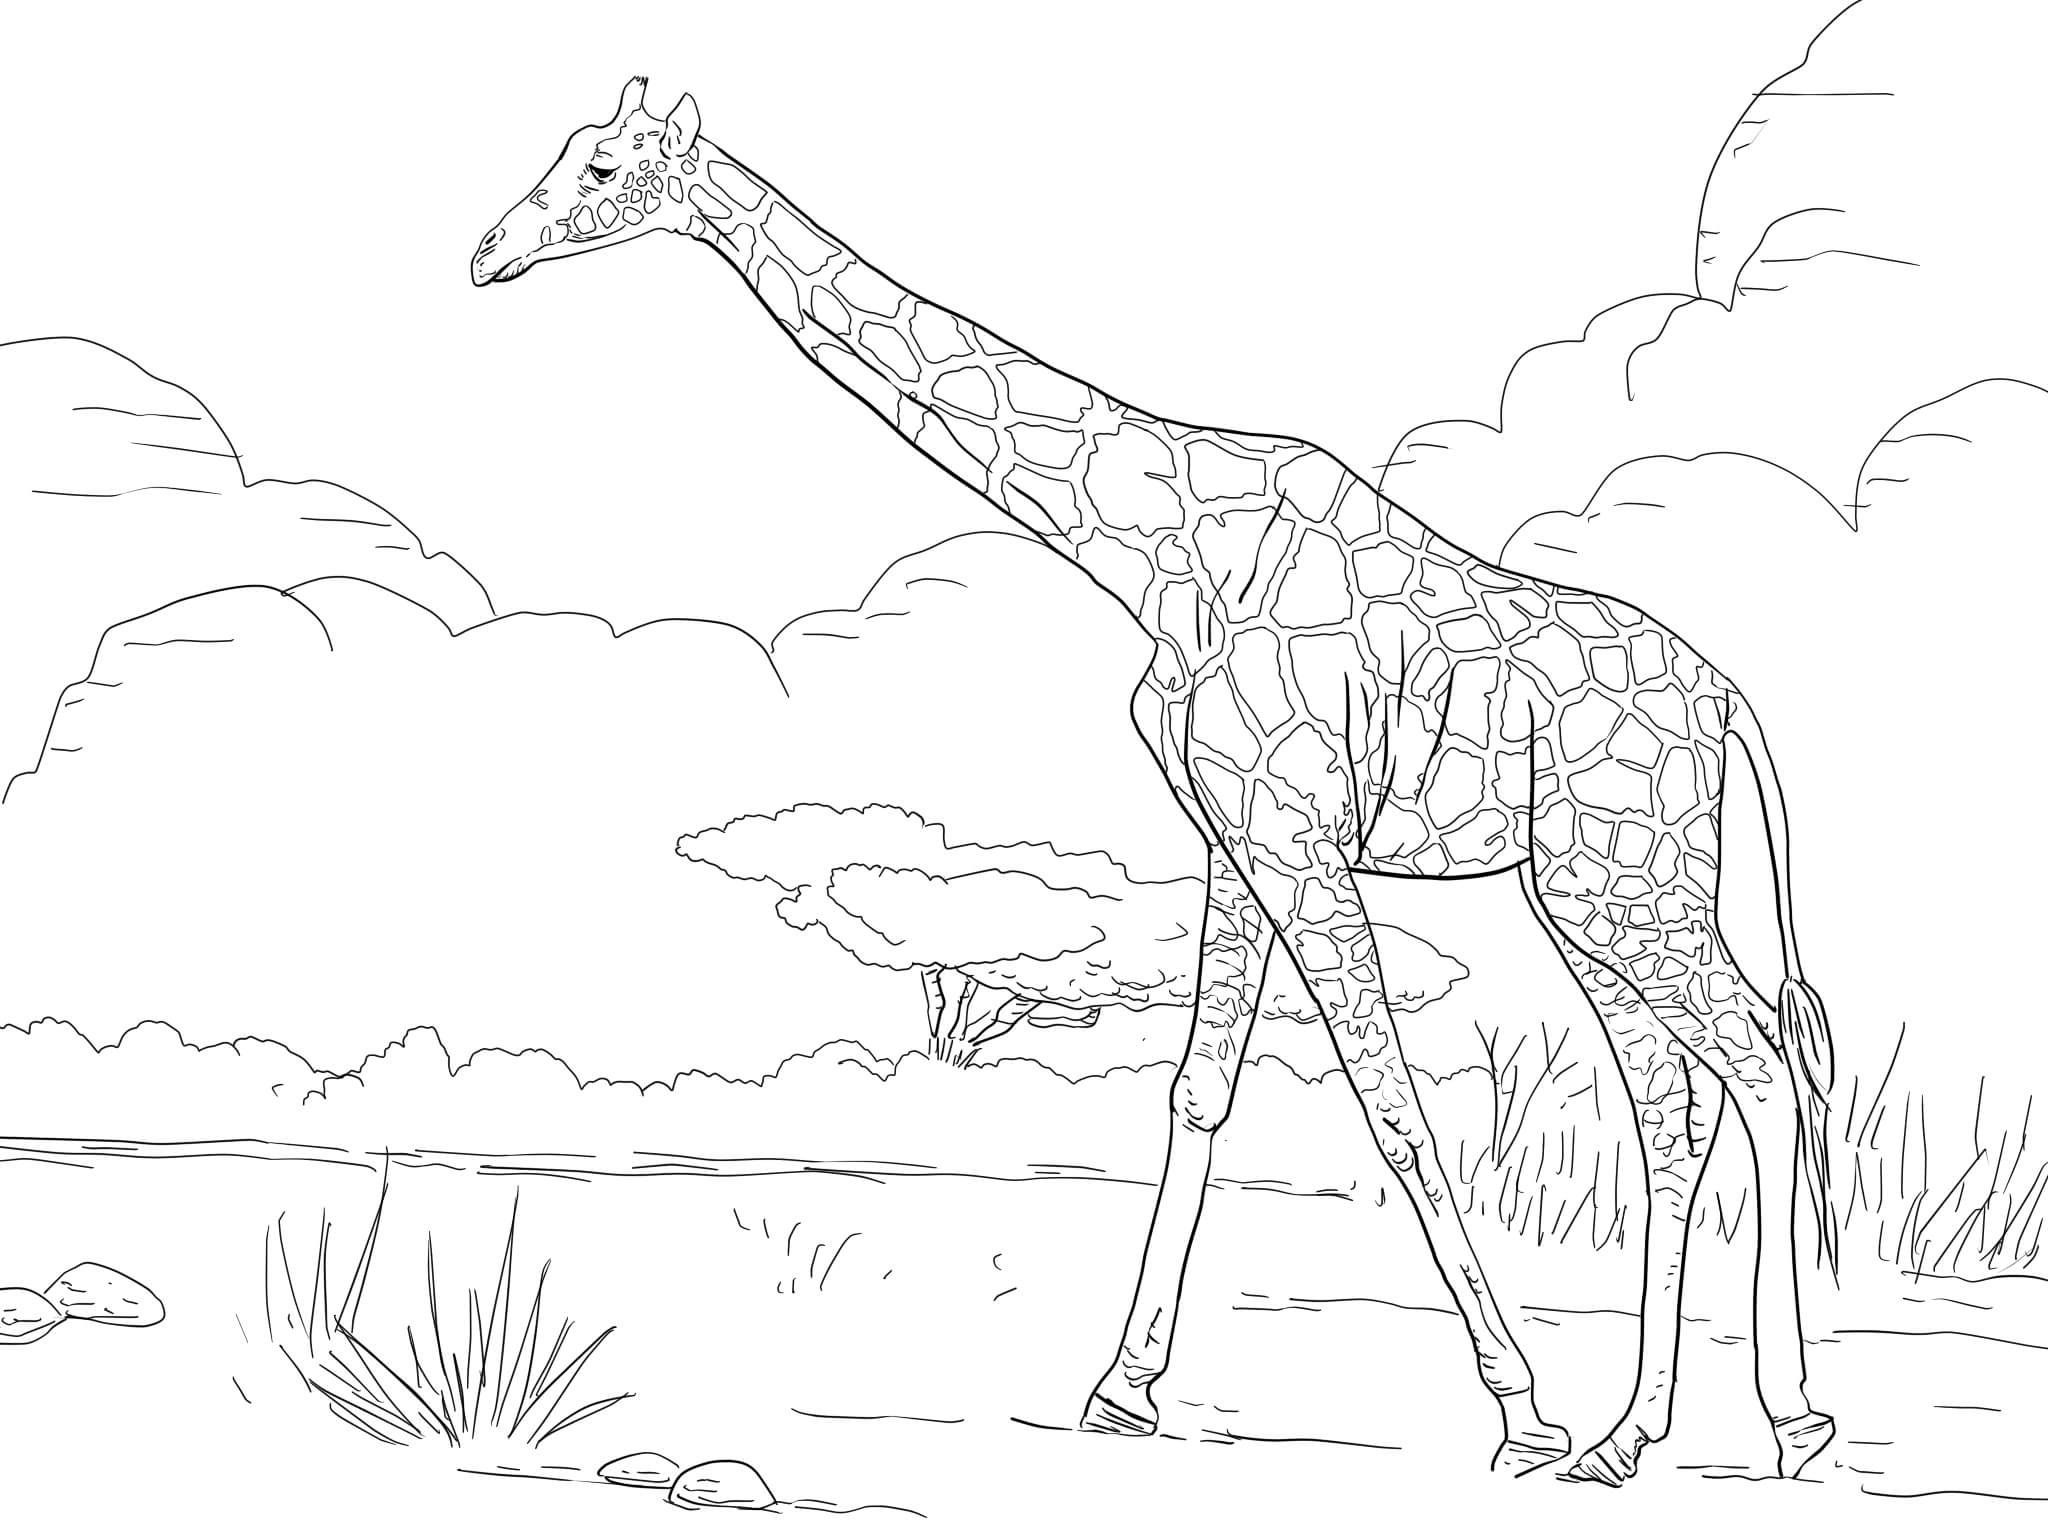 Giraffe Forage On Land Field Coloring Pages For Kids Dbz Printable Giraffes Coloring Pages For Kids Giraffe Coloring Pages Giraffe Coloring Pages For Kids